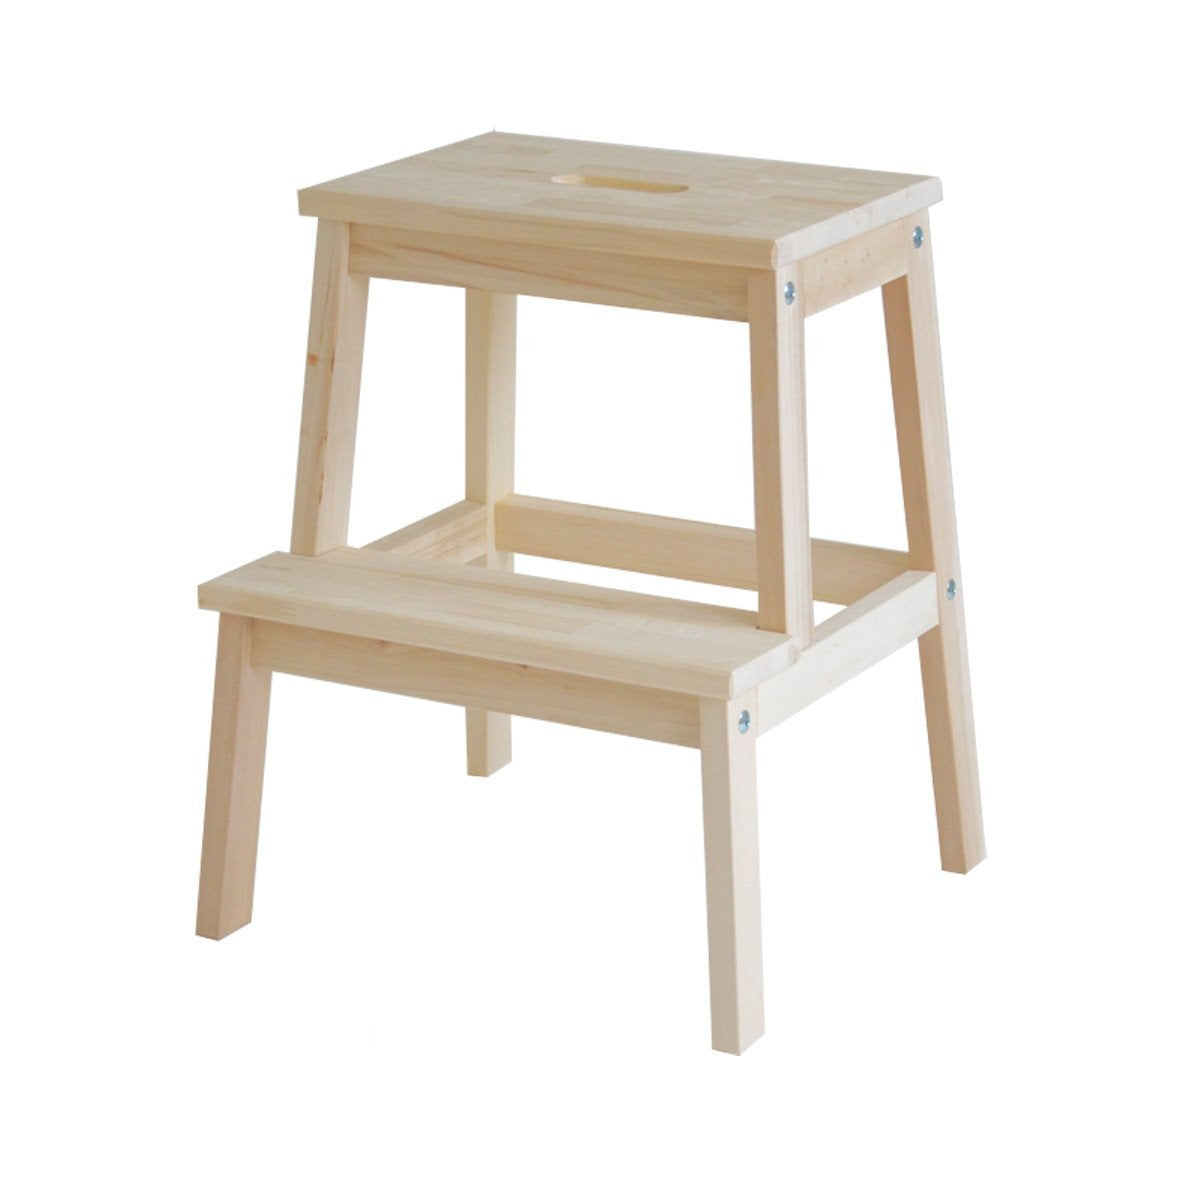 prod stainless inmoclinc steel product step stool